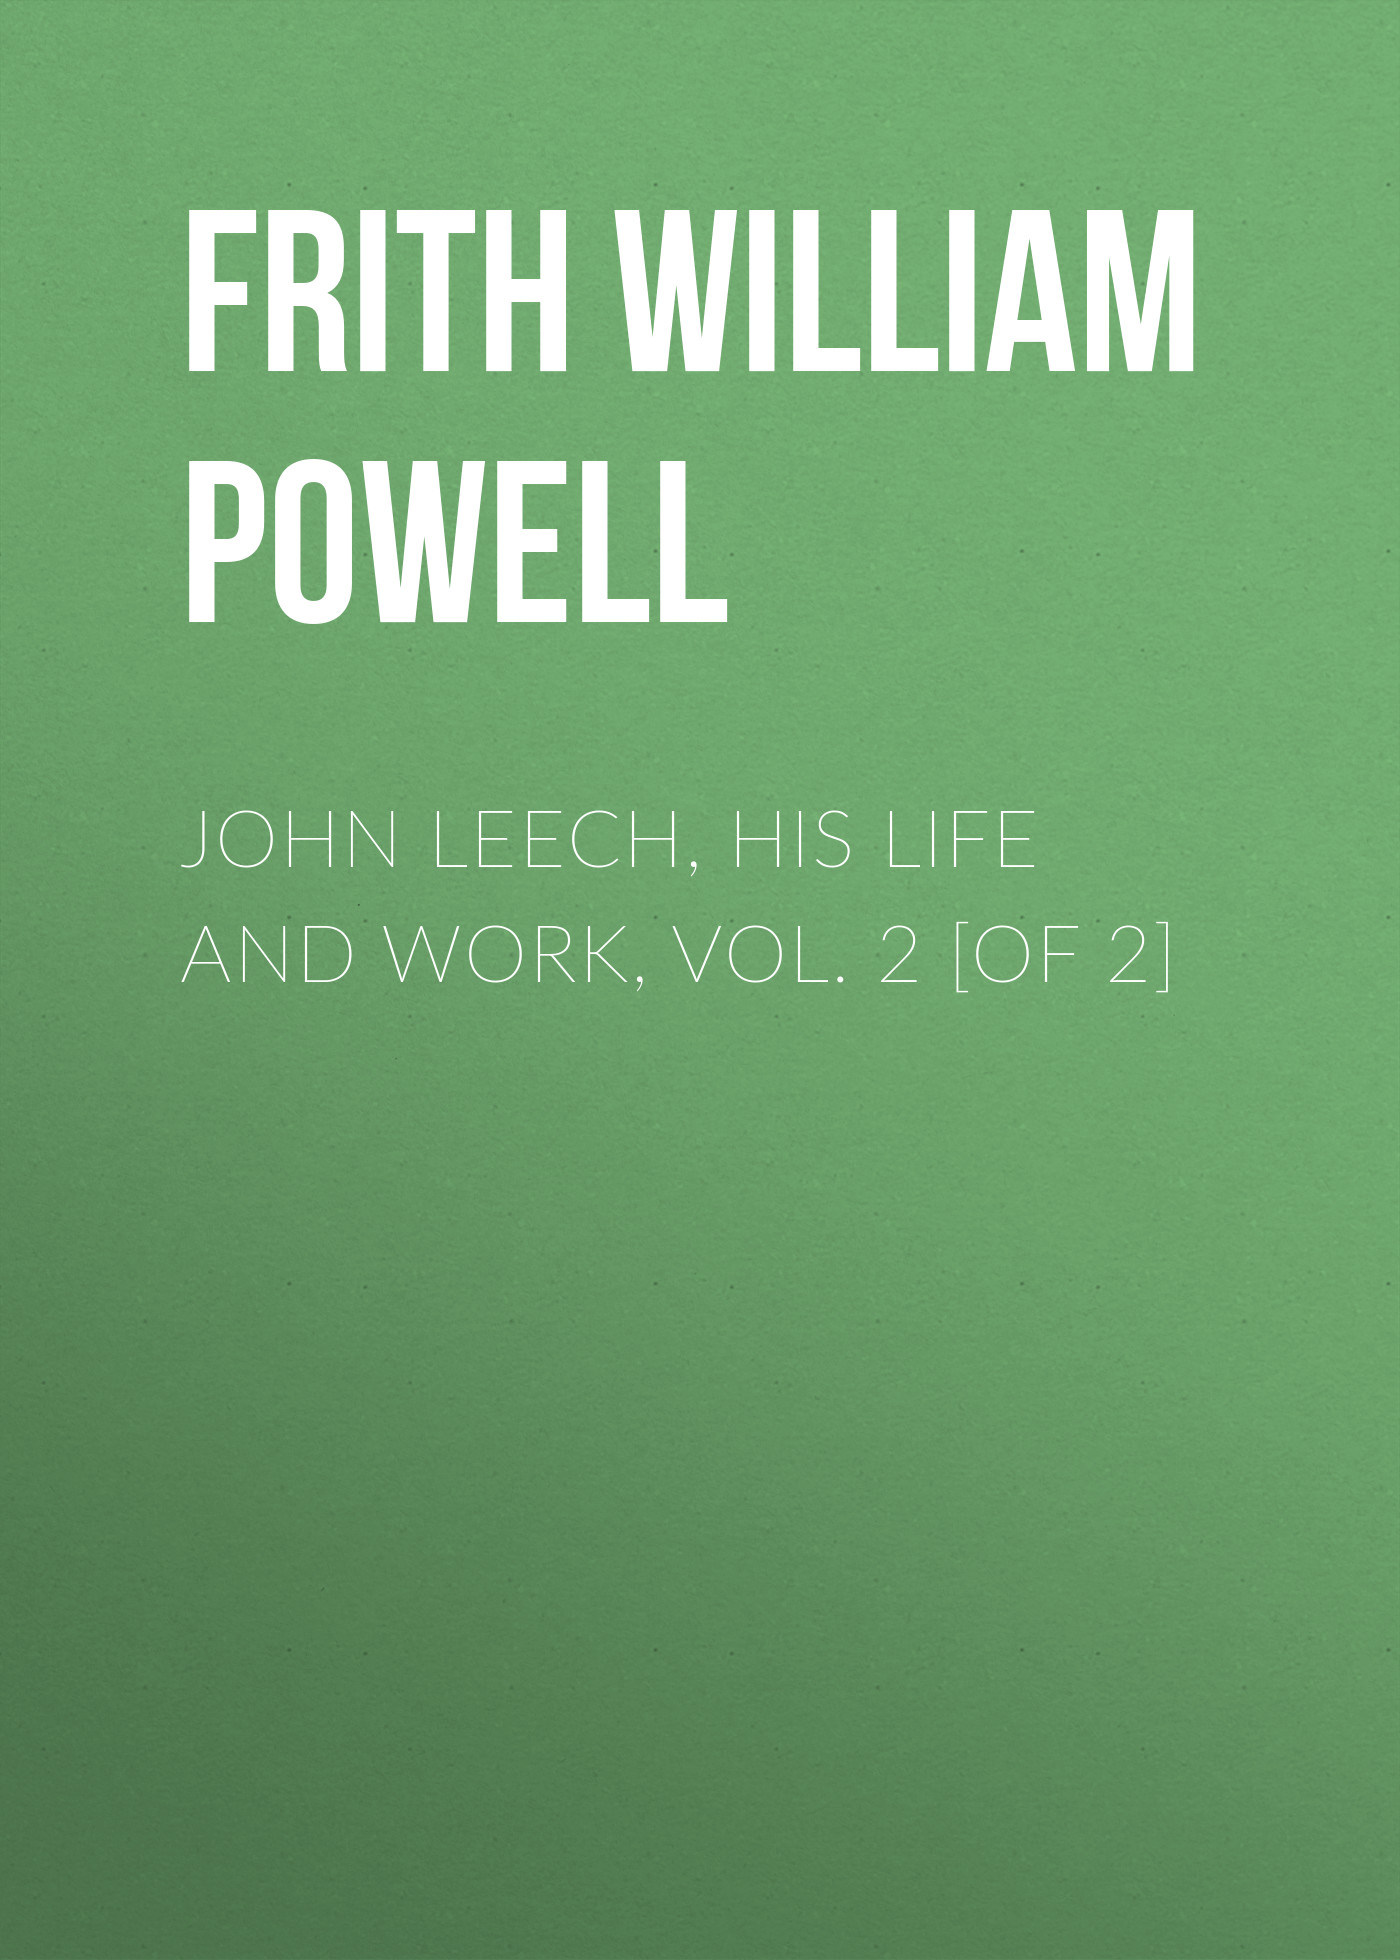 Frith William Powell John Leech, His Life and Work, Vol. 2 [of 2] frith alison abc of headache